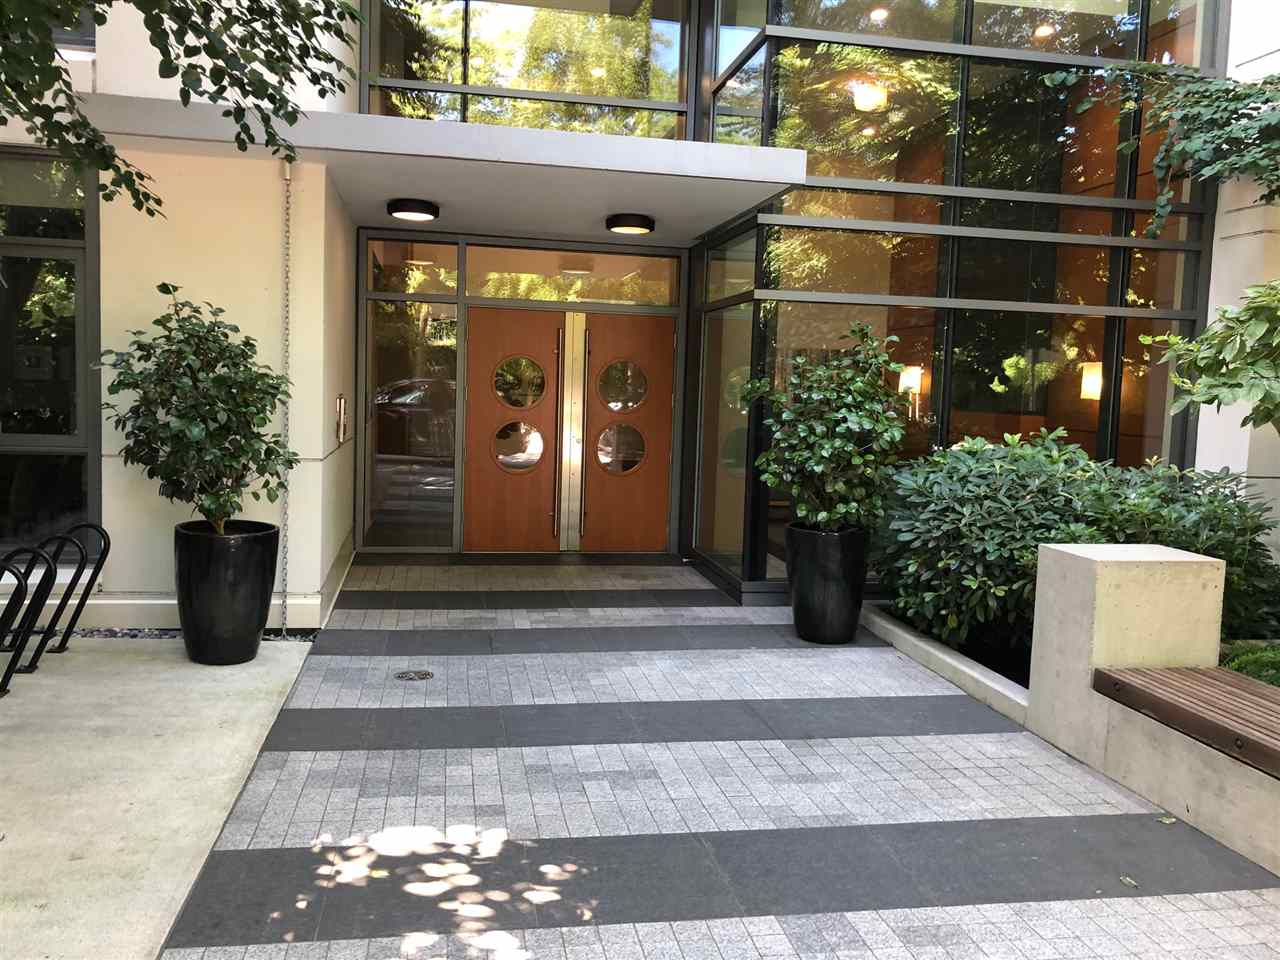 209 135 W 2ND STREET - Lower Lonsdale Apartment/Condo for sale, 2 Bedrooms (R2487810) - #1